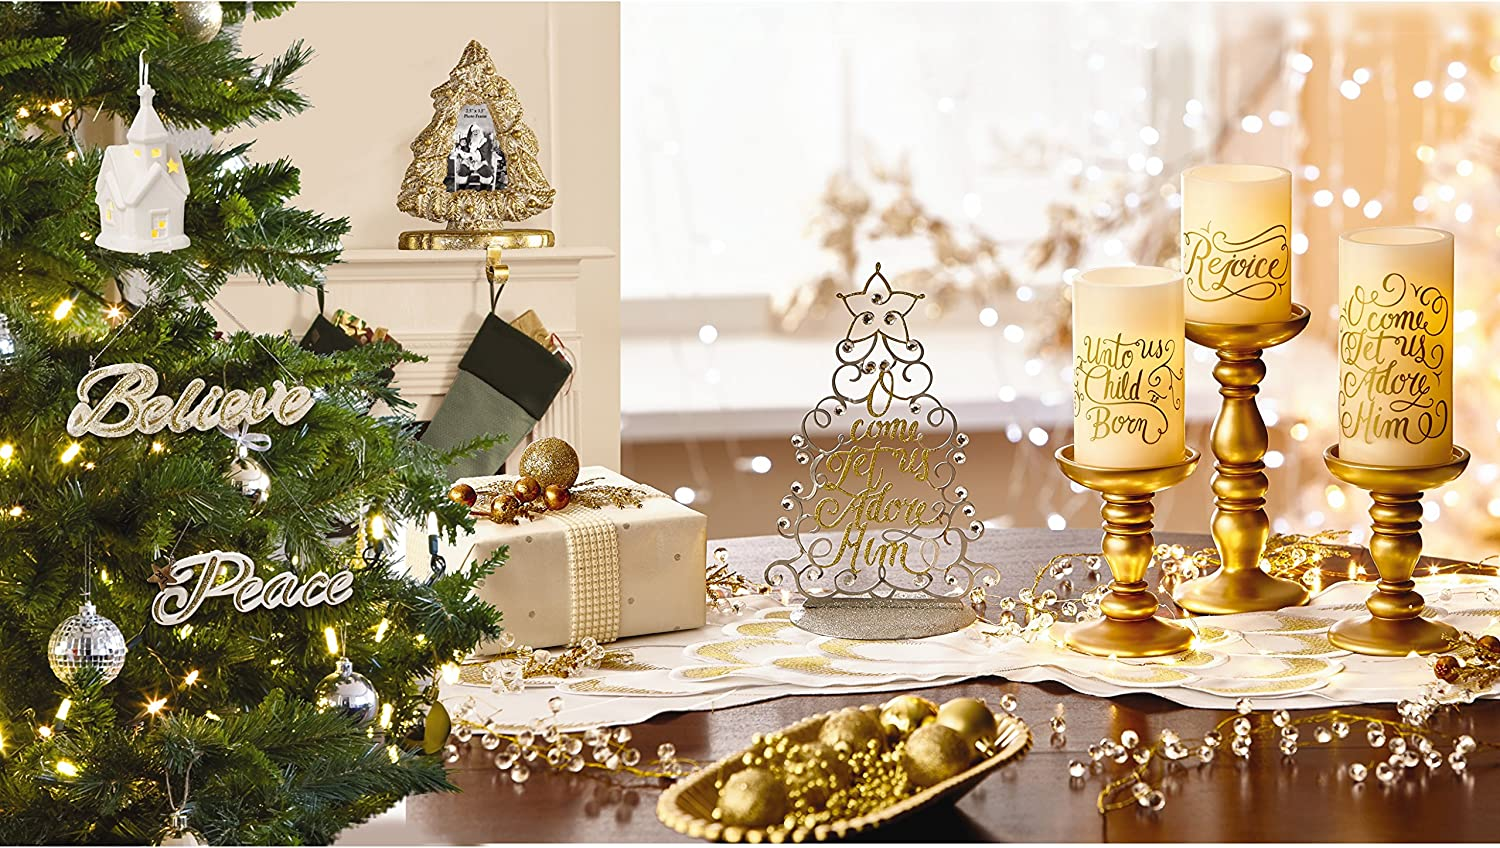 Precious Moments 171405 LED 4in Pillar Candle